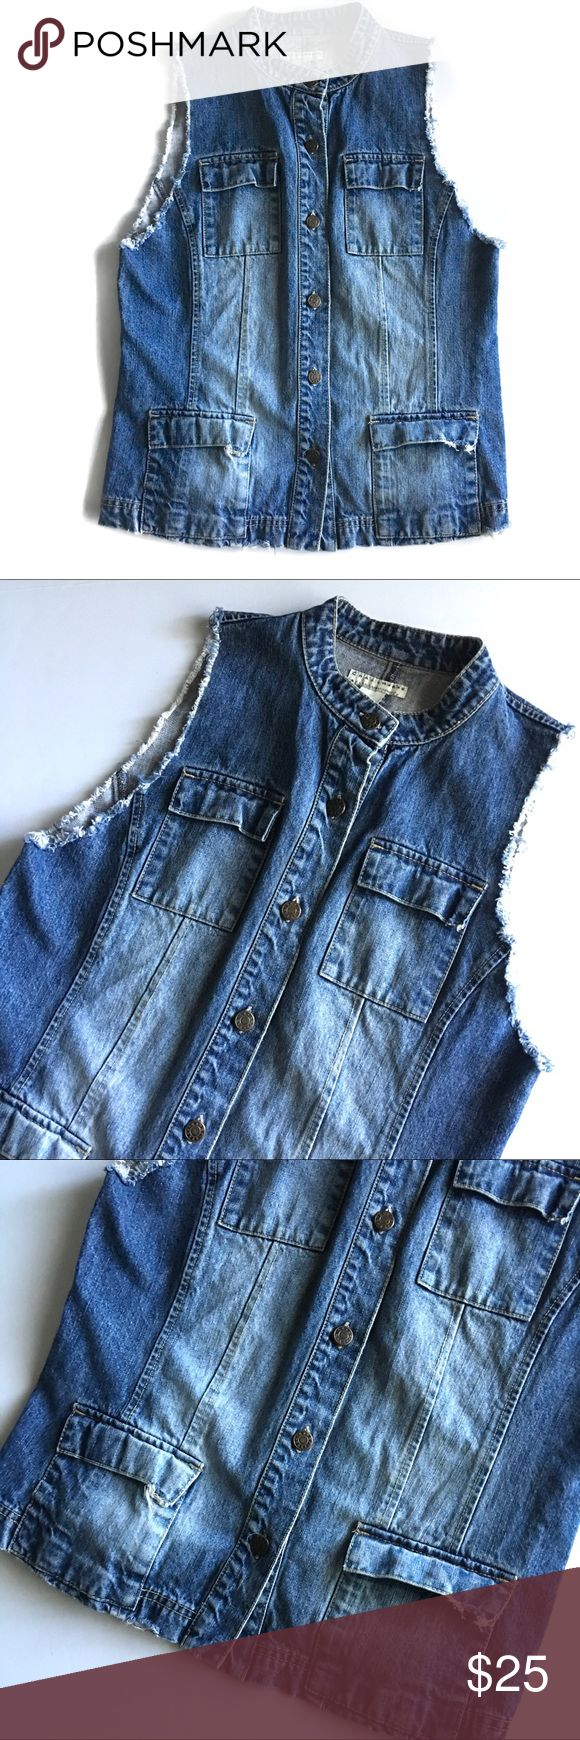 """🌎 Distressed Jean Jacket Vest I4 Factory Distressed Sleeveless Jean jacket vest // Crazy Horse brand // Sz M // 100% Cotton // Frayed edges // Four front pockets // flattering darting in back // 20"""" across armpits // 18.5"""" waist laid flat // 25"""" length // non-smoking home // not my size. Can't model. // Same Day/Next Day Shipping!! // 15.7o // Bundle Discounts Liz Claiborne Jackets & Coats Vests"""